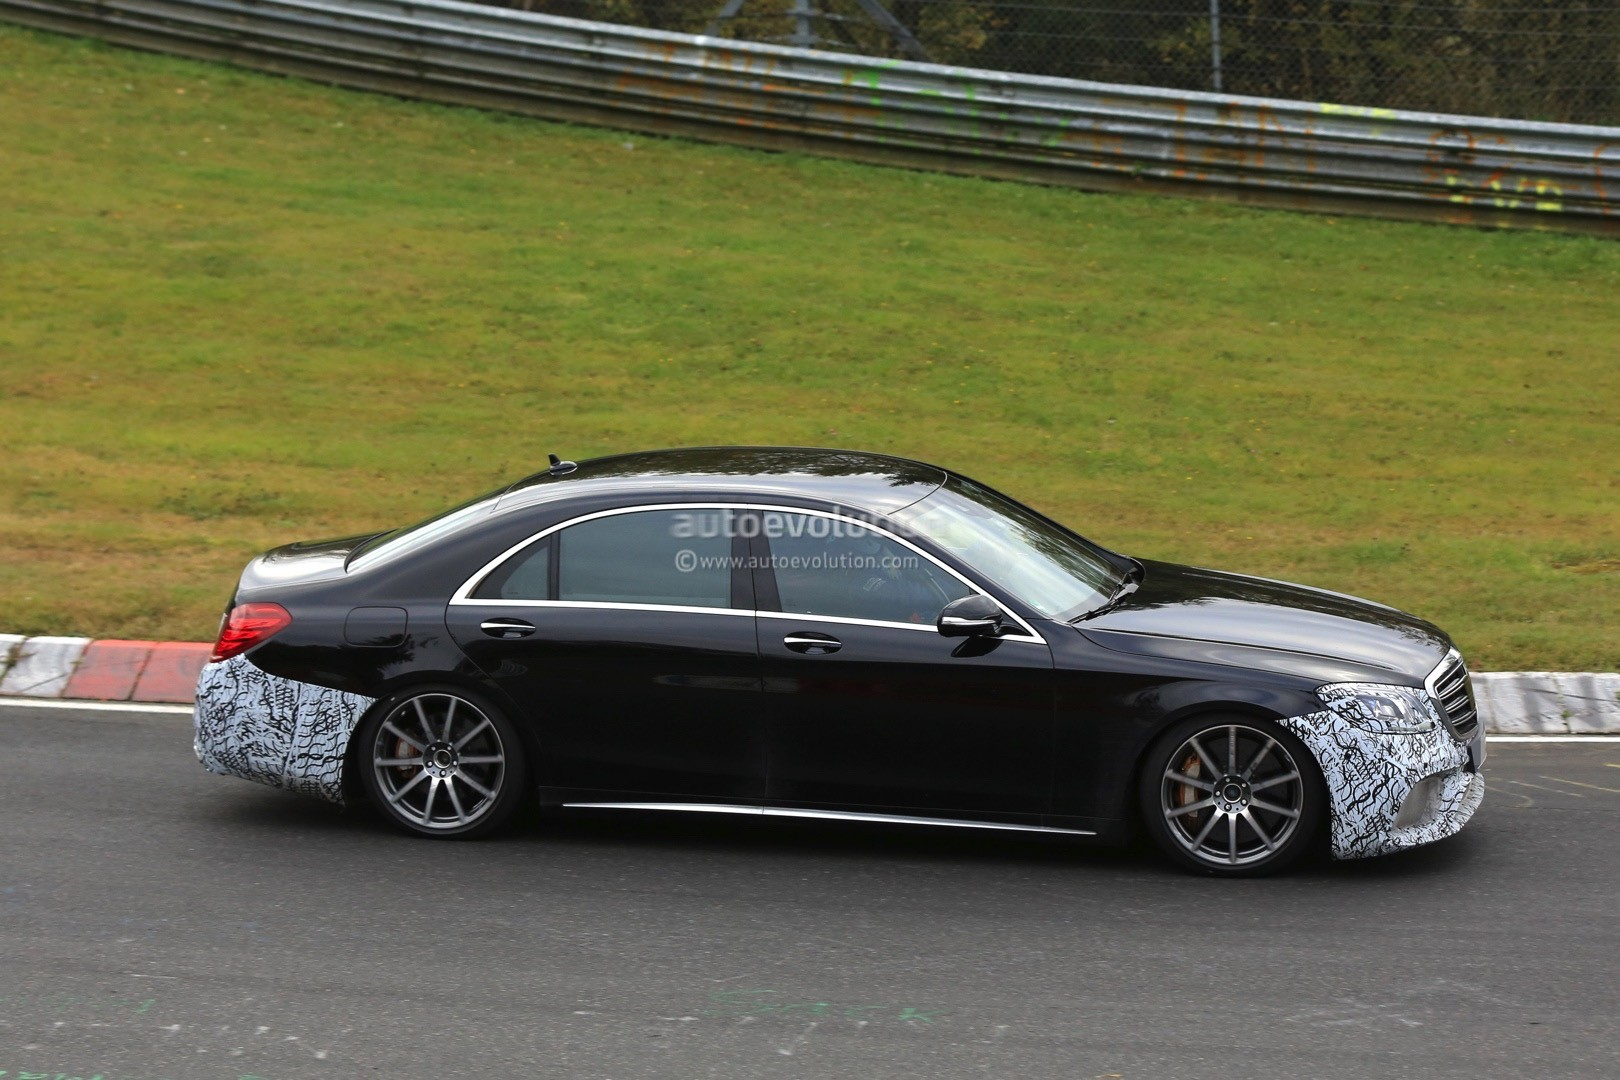 2018 Mercedes-AMG S63 4Matic+ Lang Spied With Full Roll Cage at the Nurburgring - autoevolution